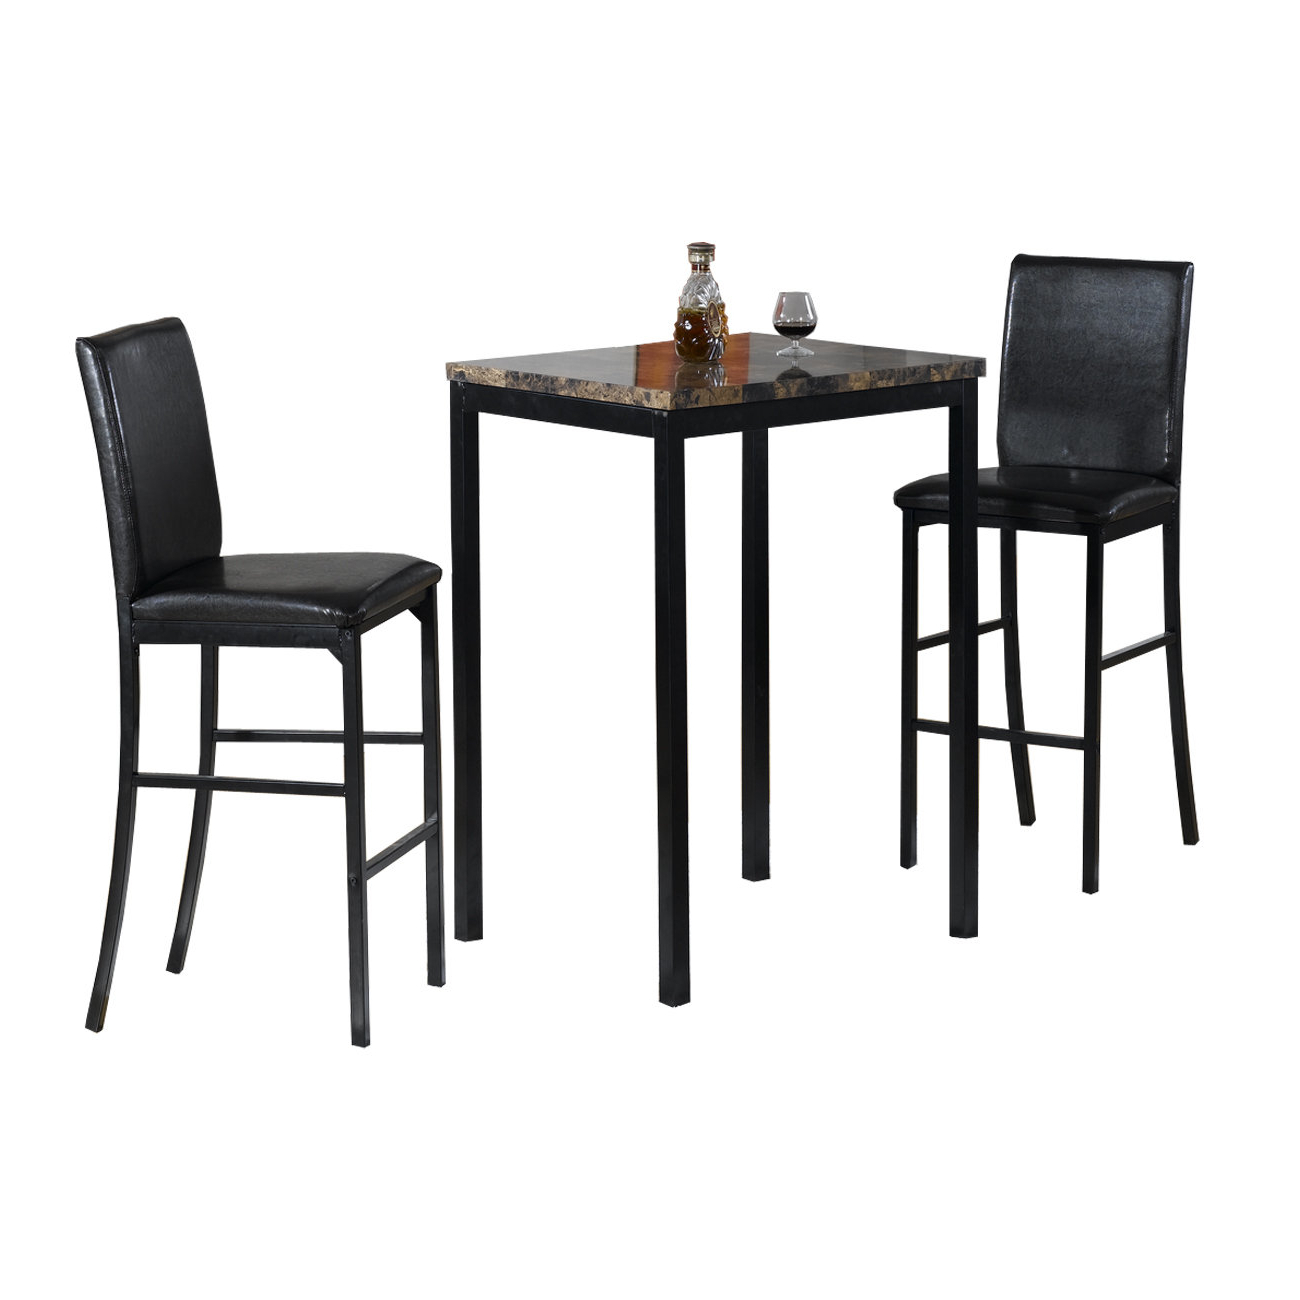 Anette 3 Piece Counter Height Dining Sets For 2020 Hazelwood Home Della 3 Piece Bistro Pub Table Set & Reviews (View 4 of 25)